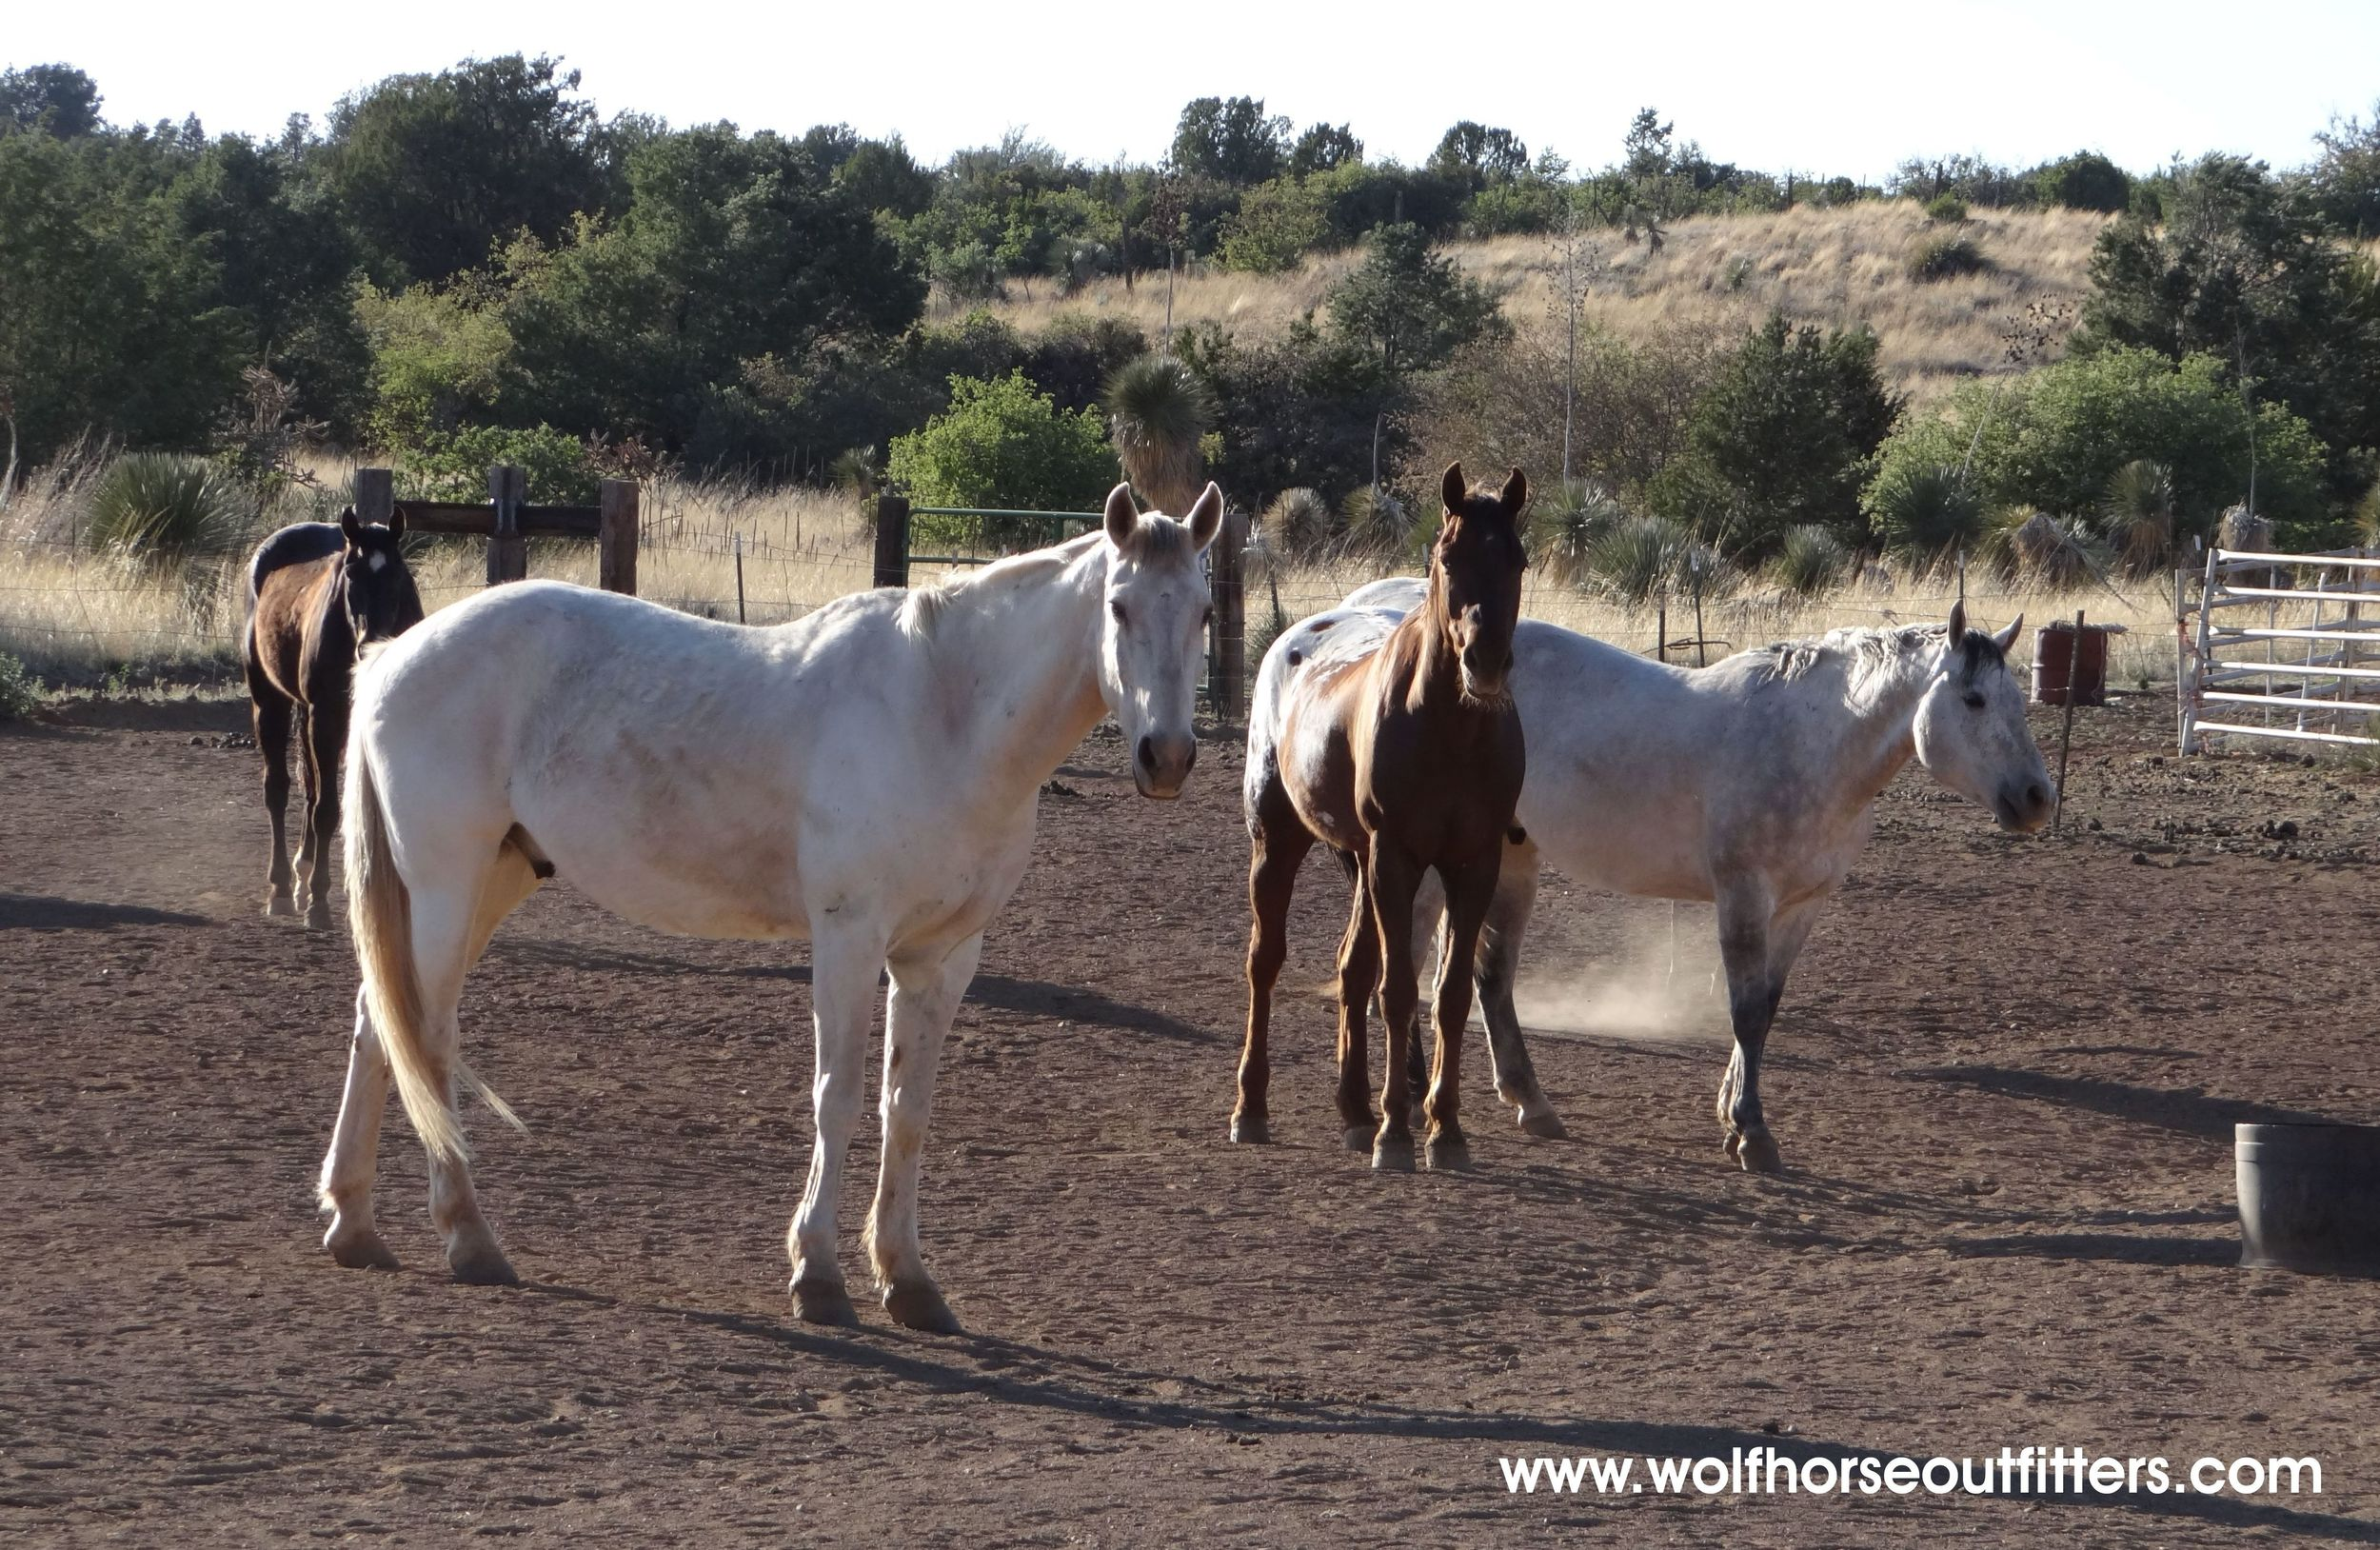 My friend, Barbel, from Germany has visited 6 times (this year with her young children). She told me that the horses at Joe Saenz's, Wolfhorse Outfitters are gentle, experienced and wilderness ready. Image: Thanks to  ©Wolfhorse Outfitters